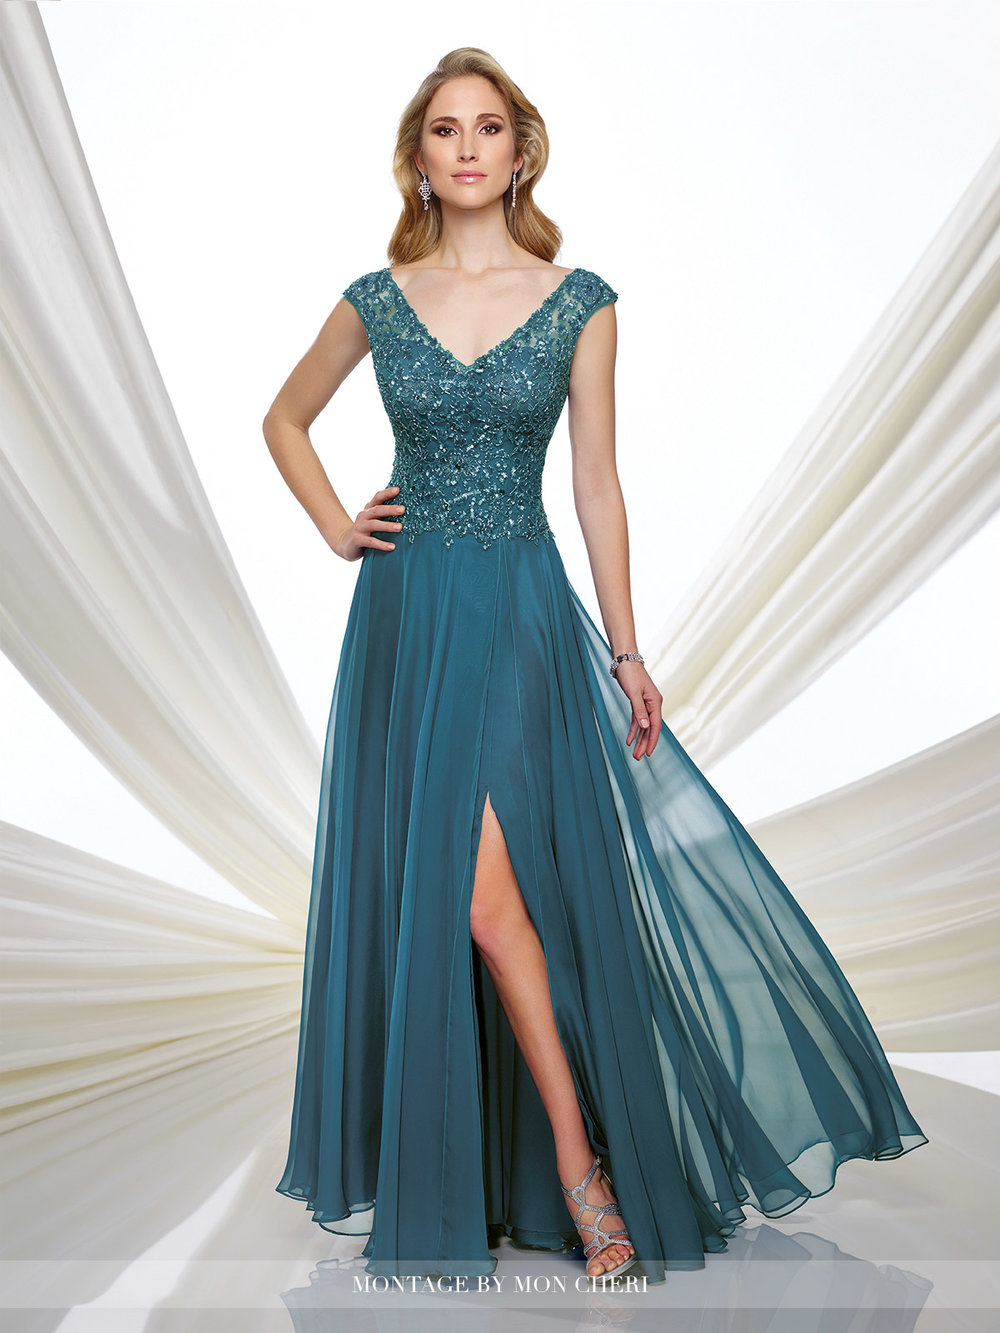 216973_mother_of_the_bride_dresses.jpg